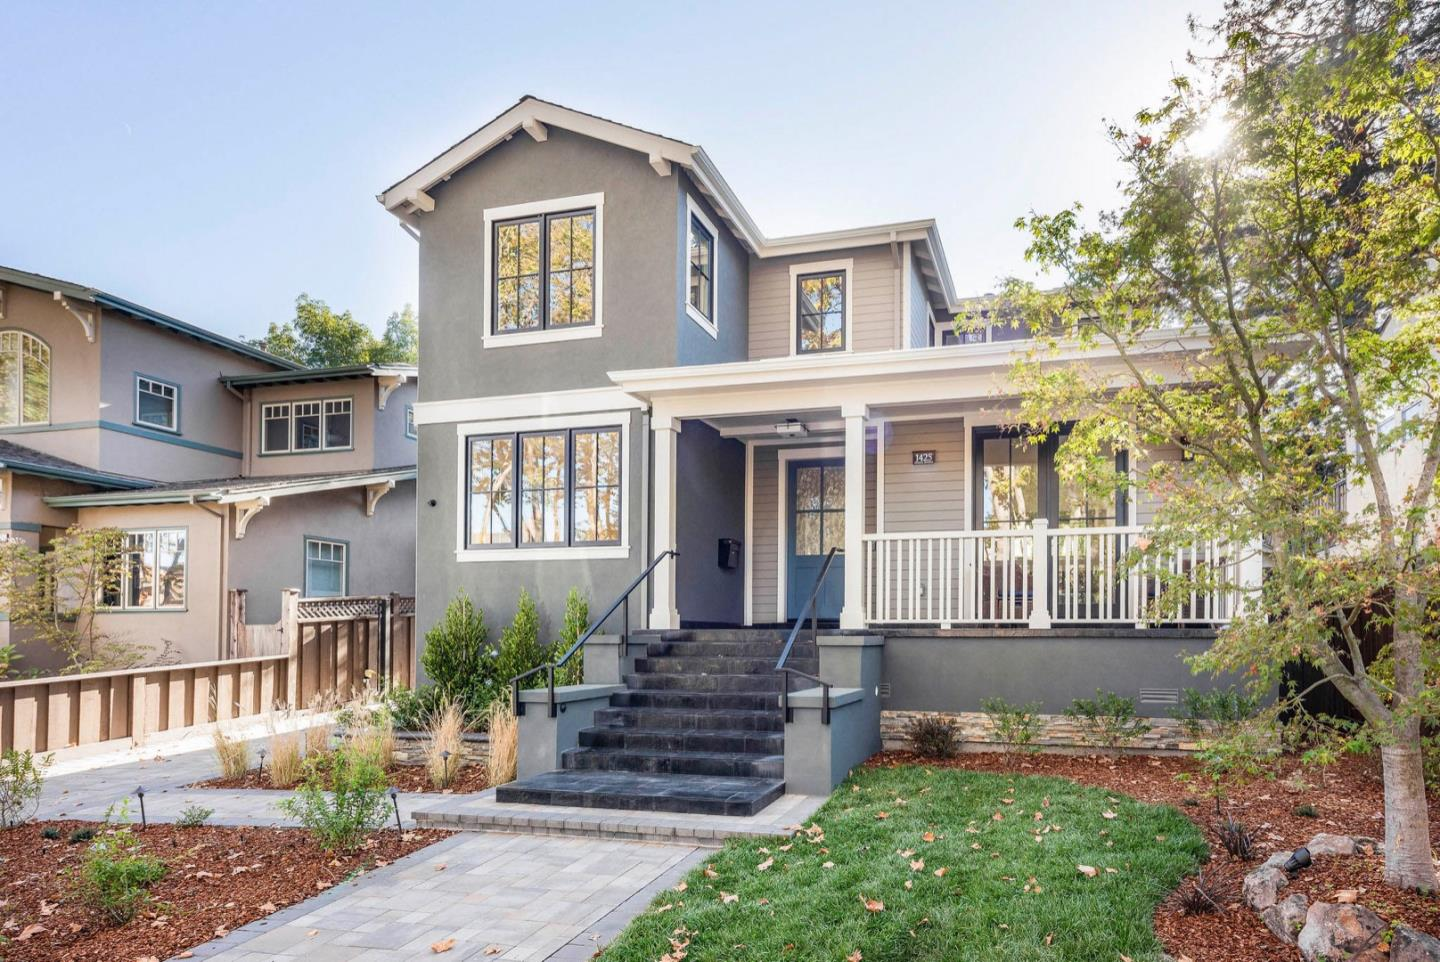 Newly built from the ground-up in the prestigious Easton Addition! Modern, sophisticated, open, bright, and airy 2-story showcase home with 5BR/4BA. Built-in camera system. Recessed lighting. Conveniently close to many amenities including fine shops and restaurants of Broadway and downtown Burlingame.